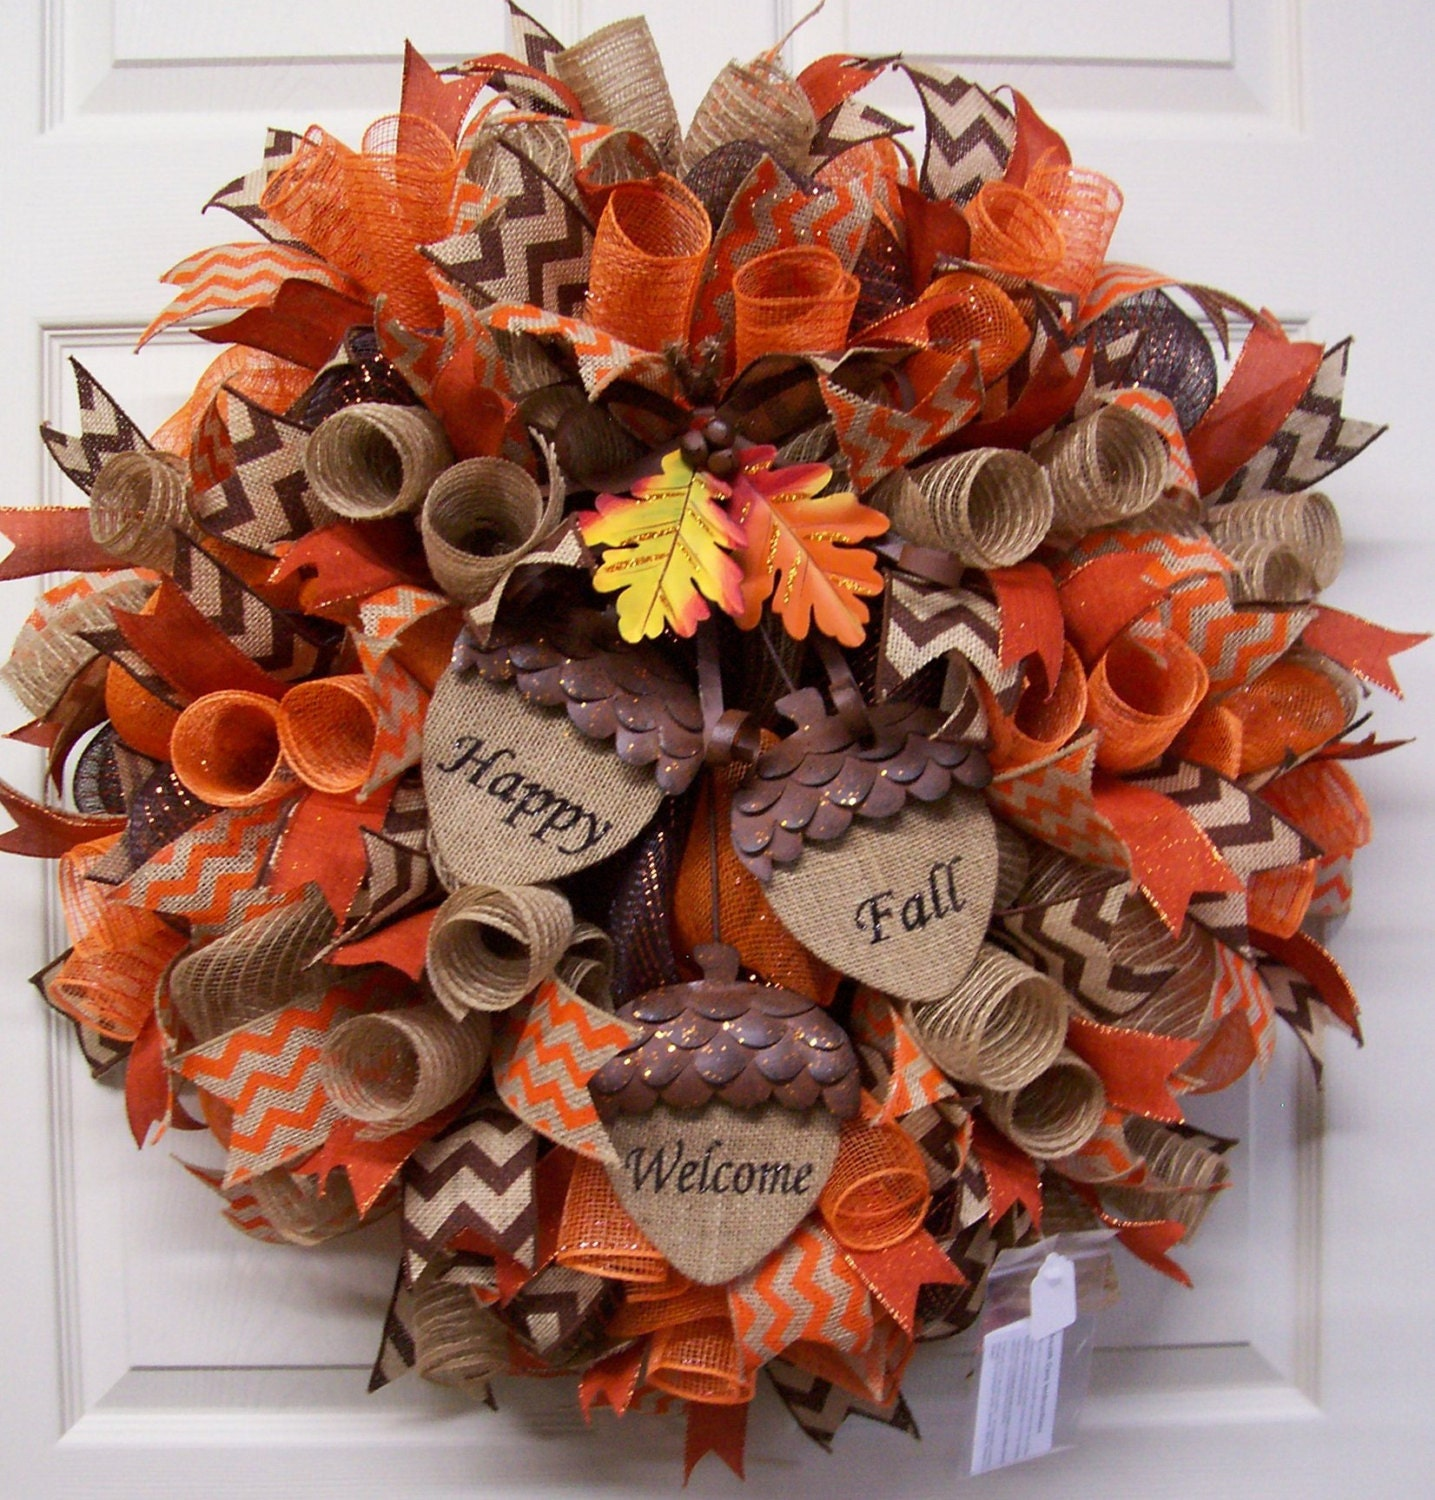 12 Easy Diy Deco Mesh Wreaths For Fall: Fall Mesh WreathFall Burlap WreathFall Door By CherylsCrafts1